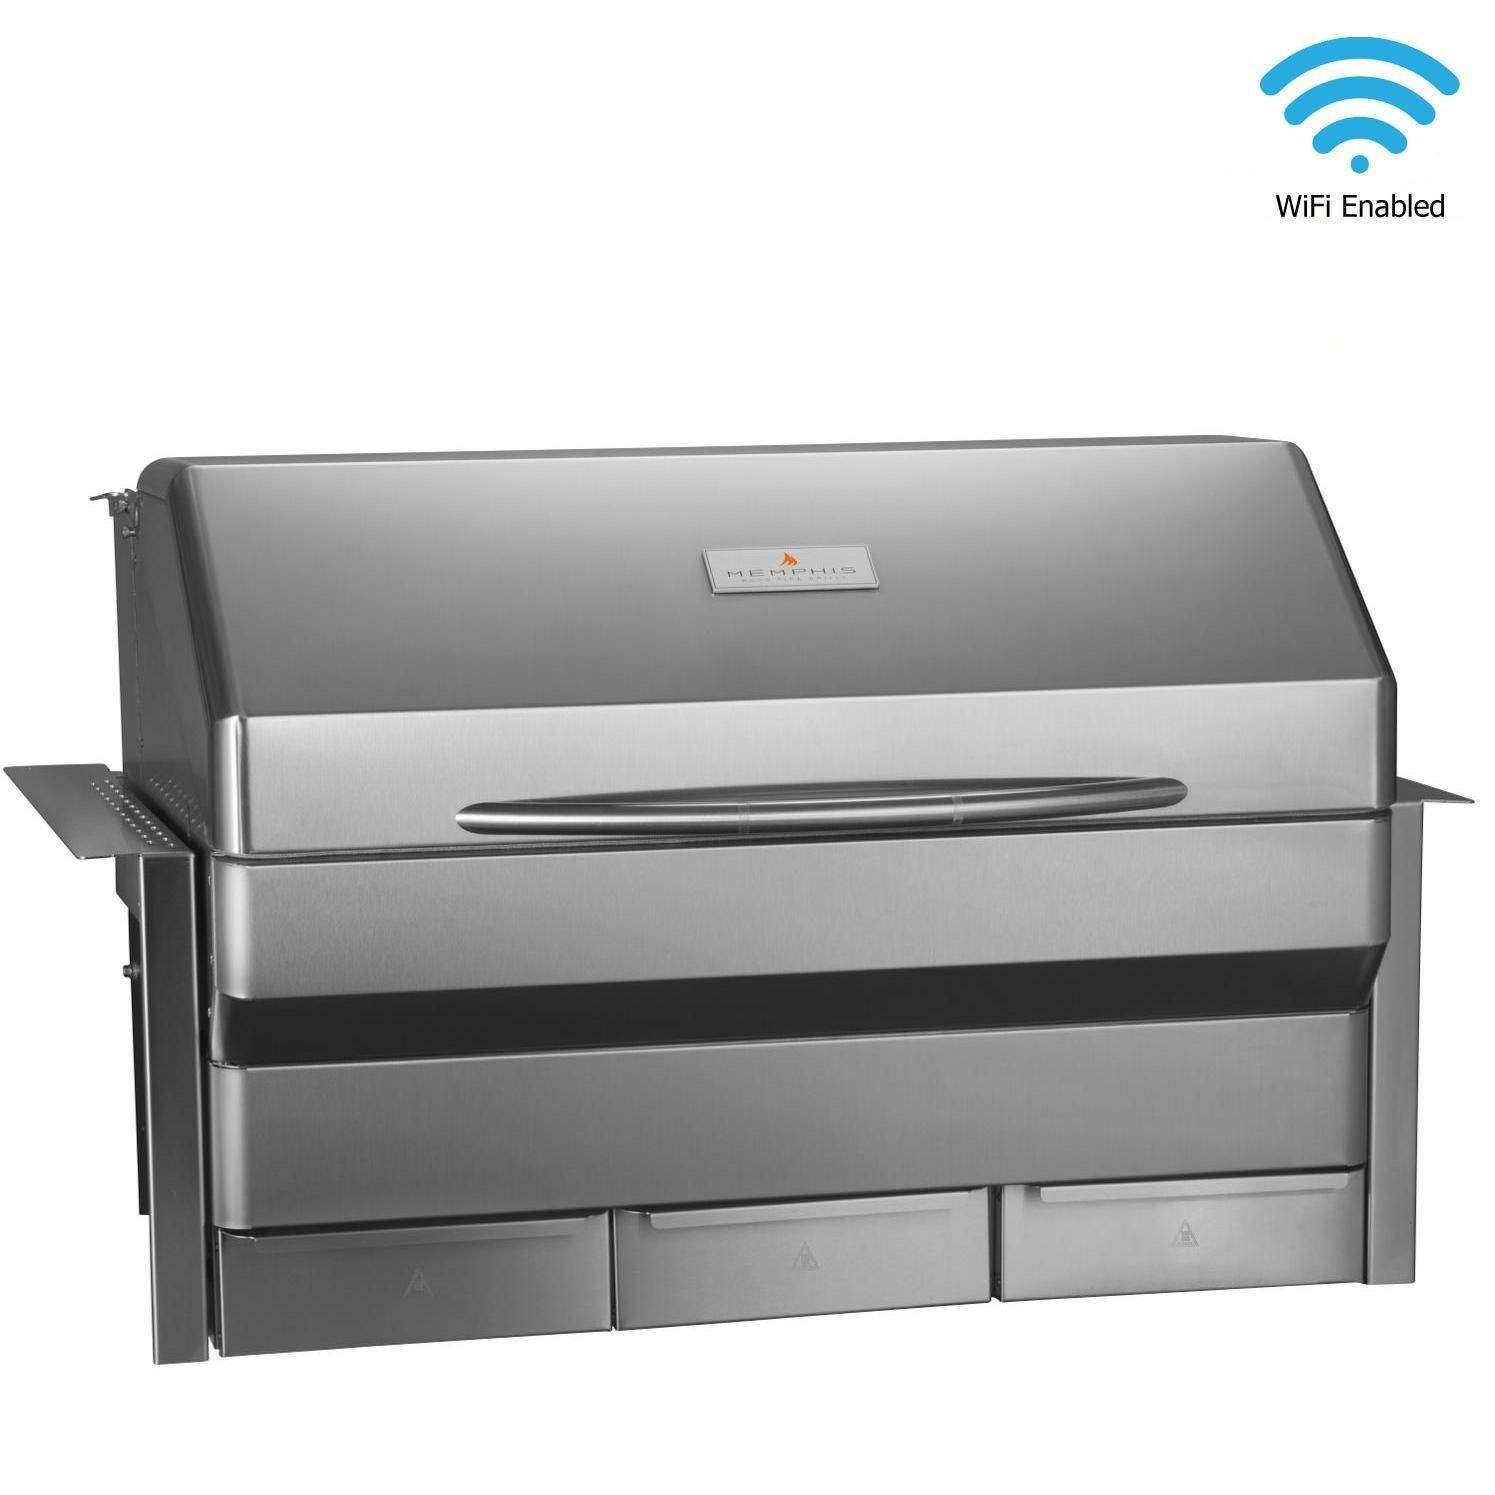 Memphis Grills Elite Wood Fire Pellet Smoker Grill Wi-Fi VGB0002S , Built-in, 304 Stainless Steel Alloy